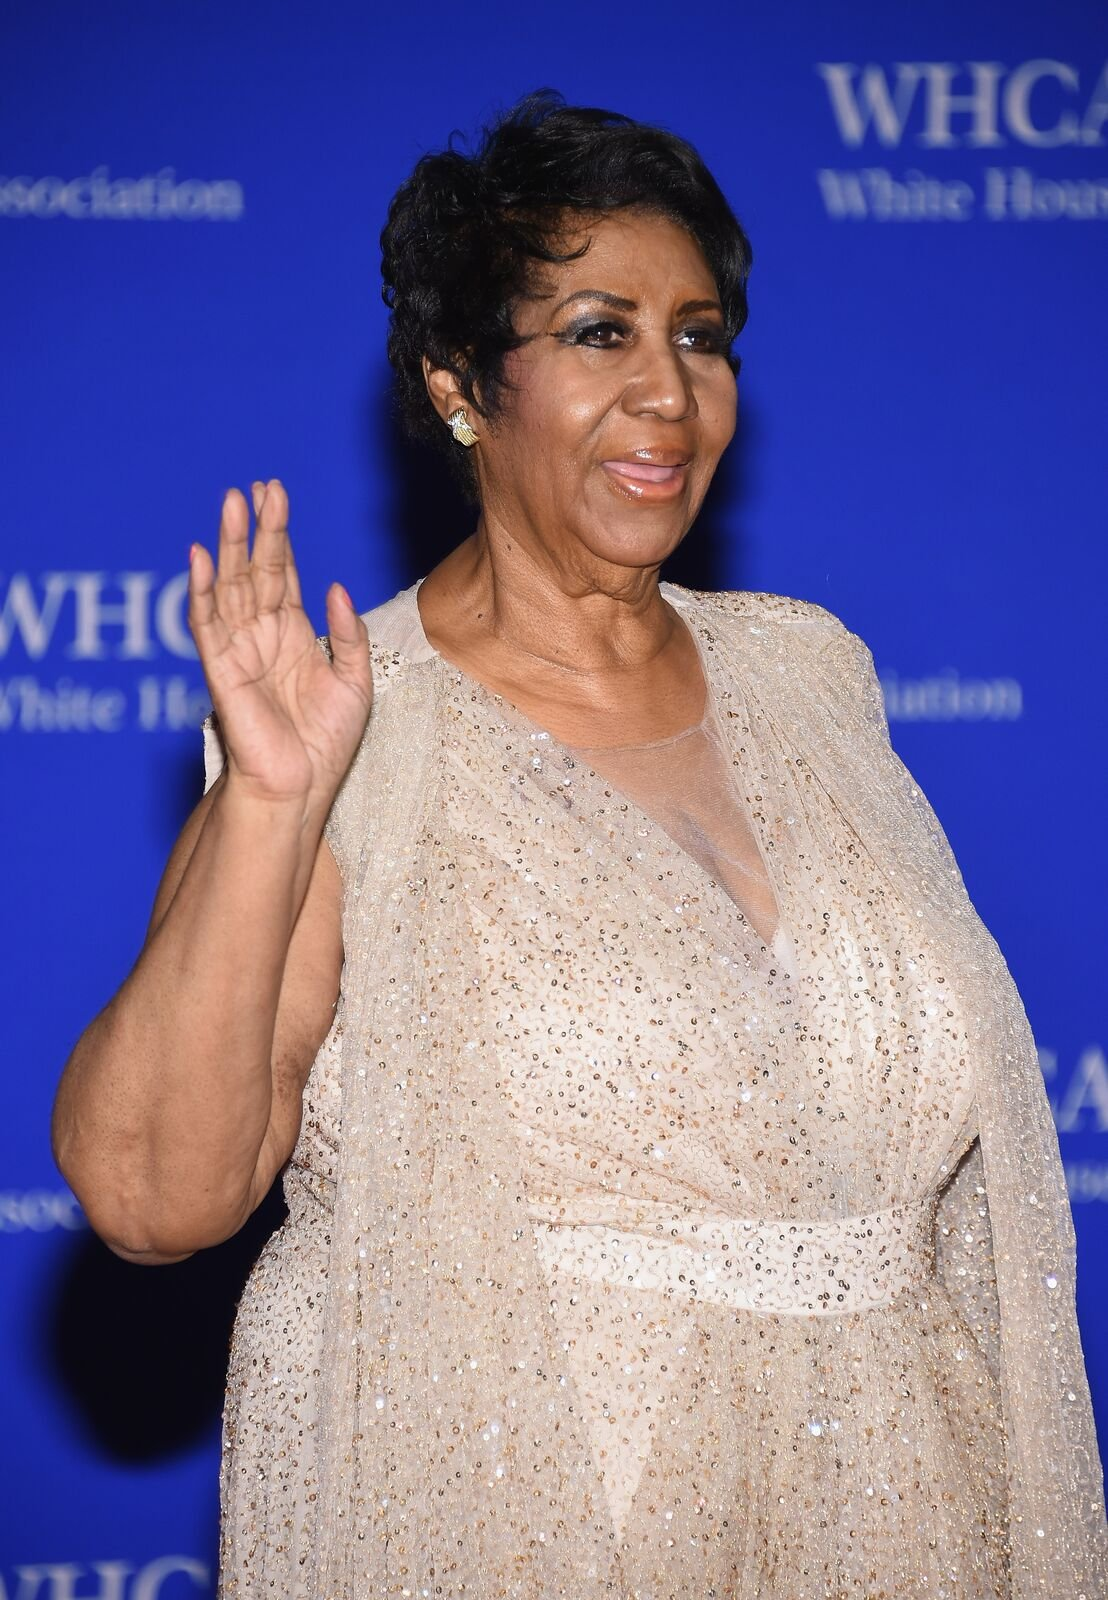 Singer Aretha Franklin attends the 102nd White House Correspondents' Association Dinner on April 30, 2016 in Washington, DC. | Photo: Getty Images